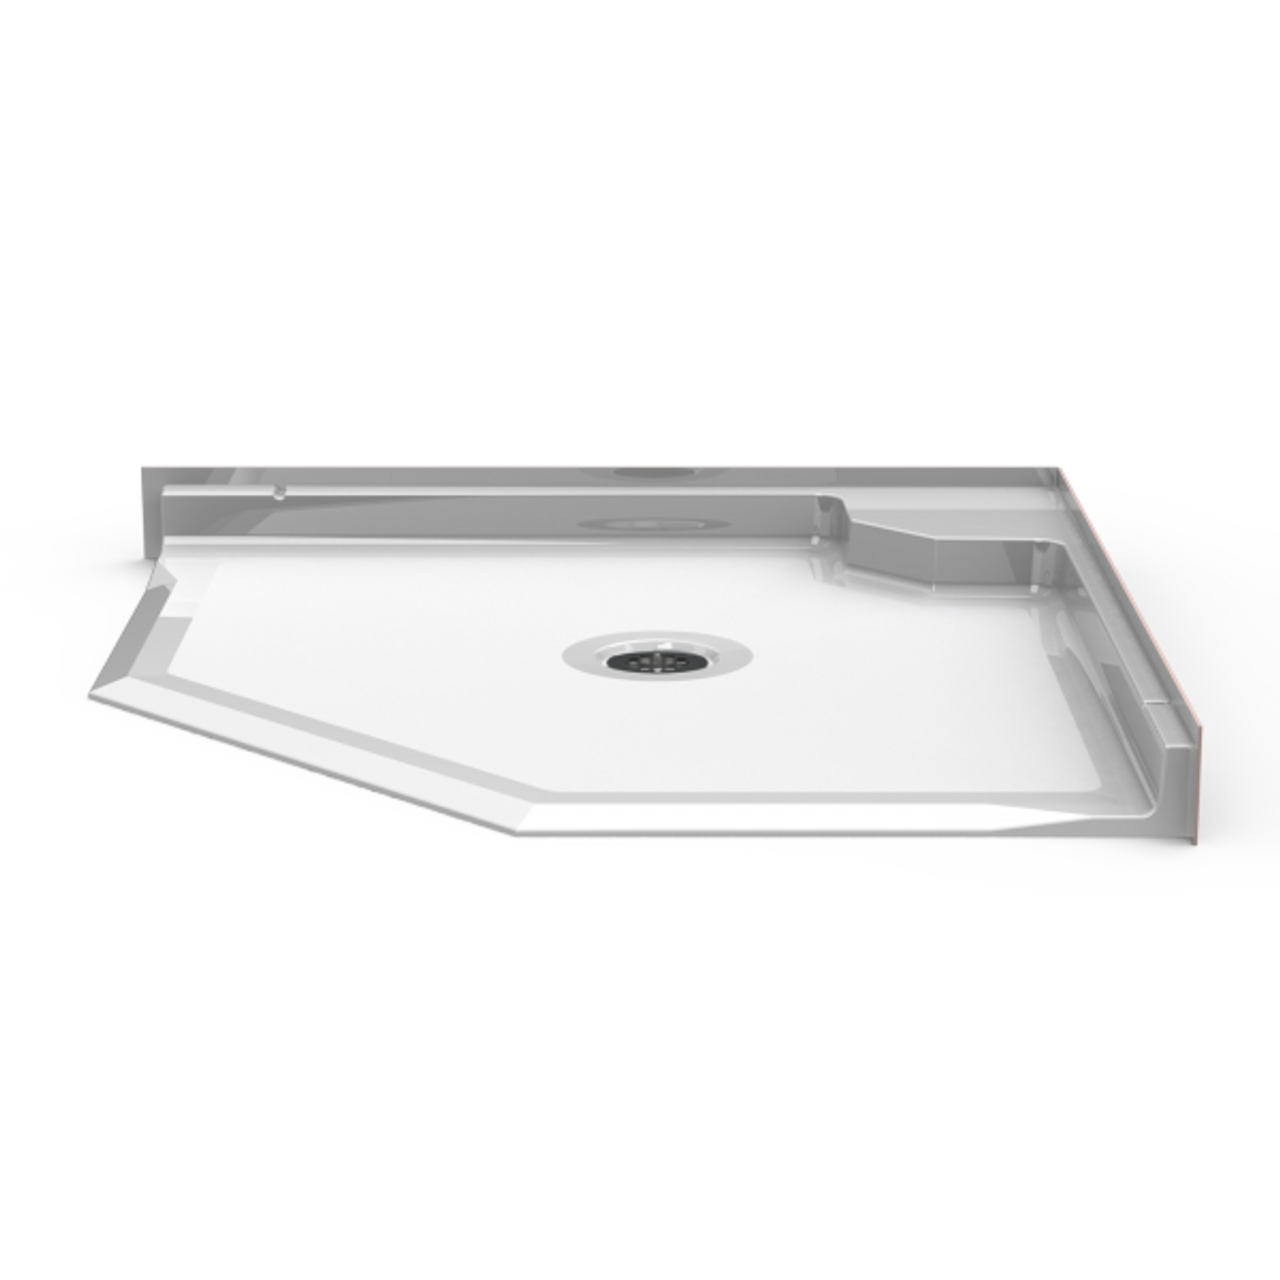 Neo Angle Shower Base.Neo Angle Roll In Shower Pan 42 X 42